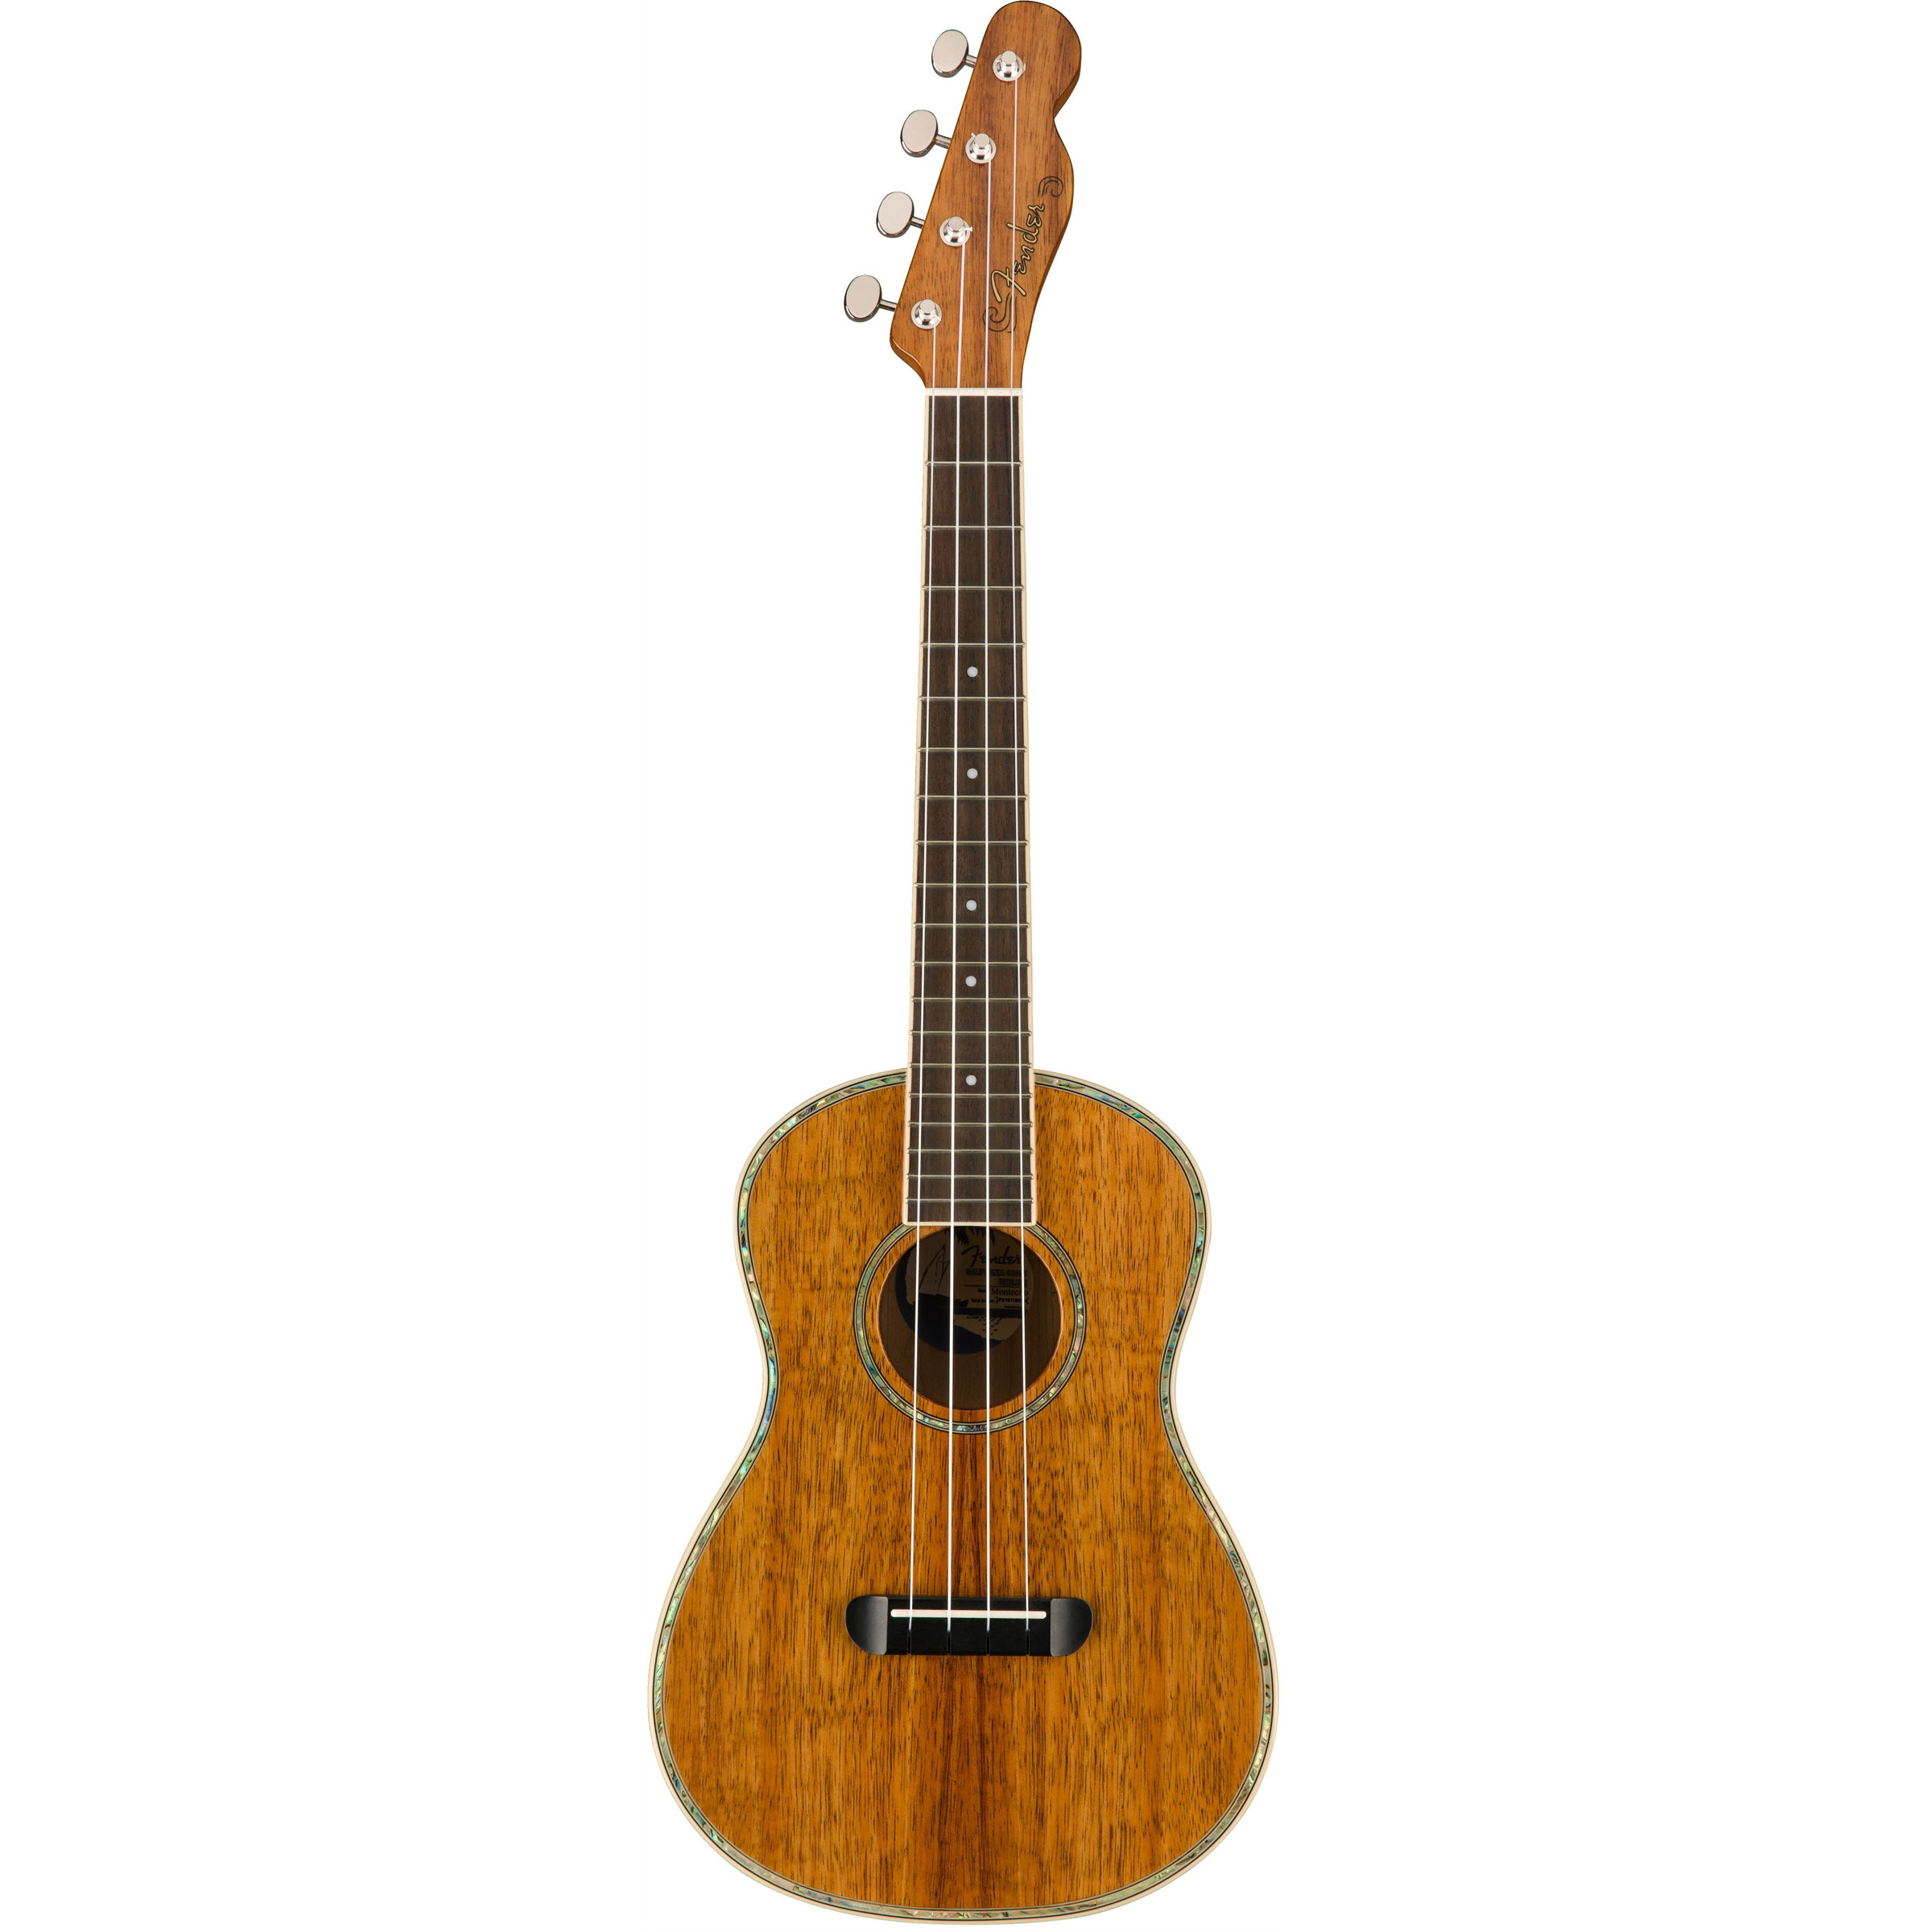 Fender California Coast Montecito tenor ukulele incl. gig bag, koa